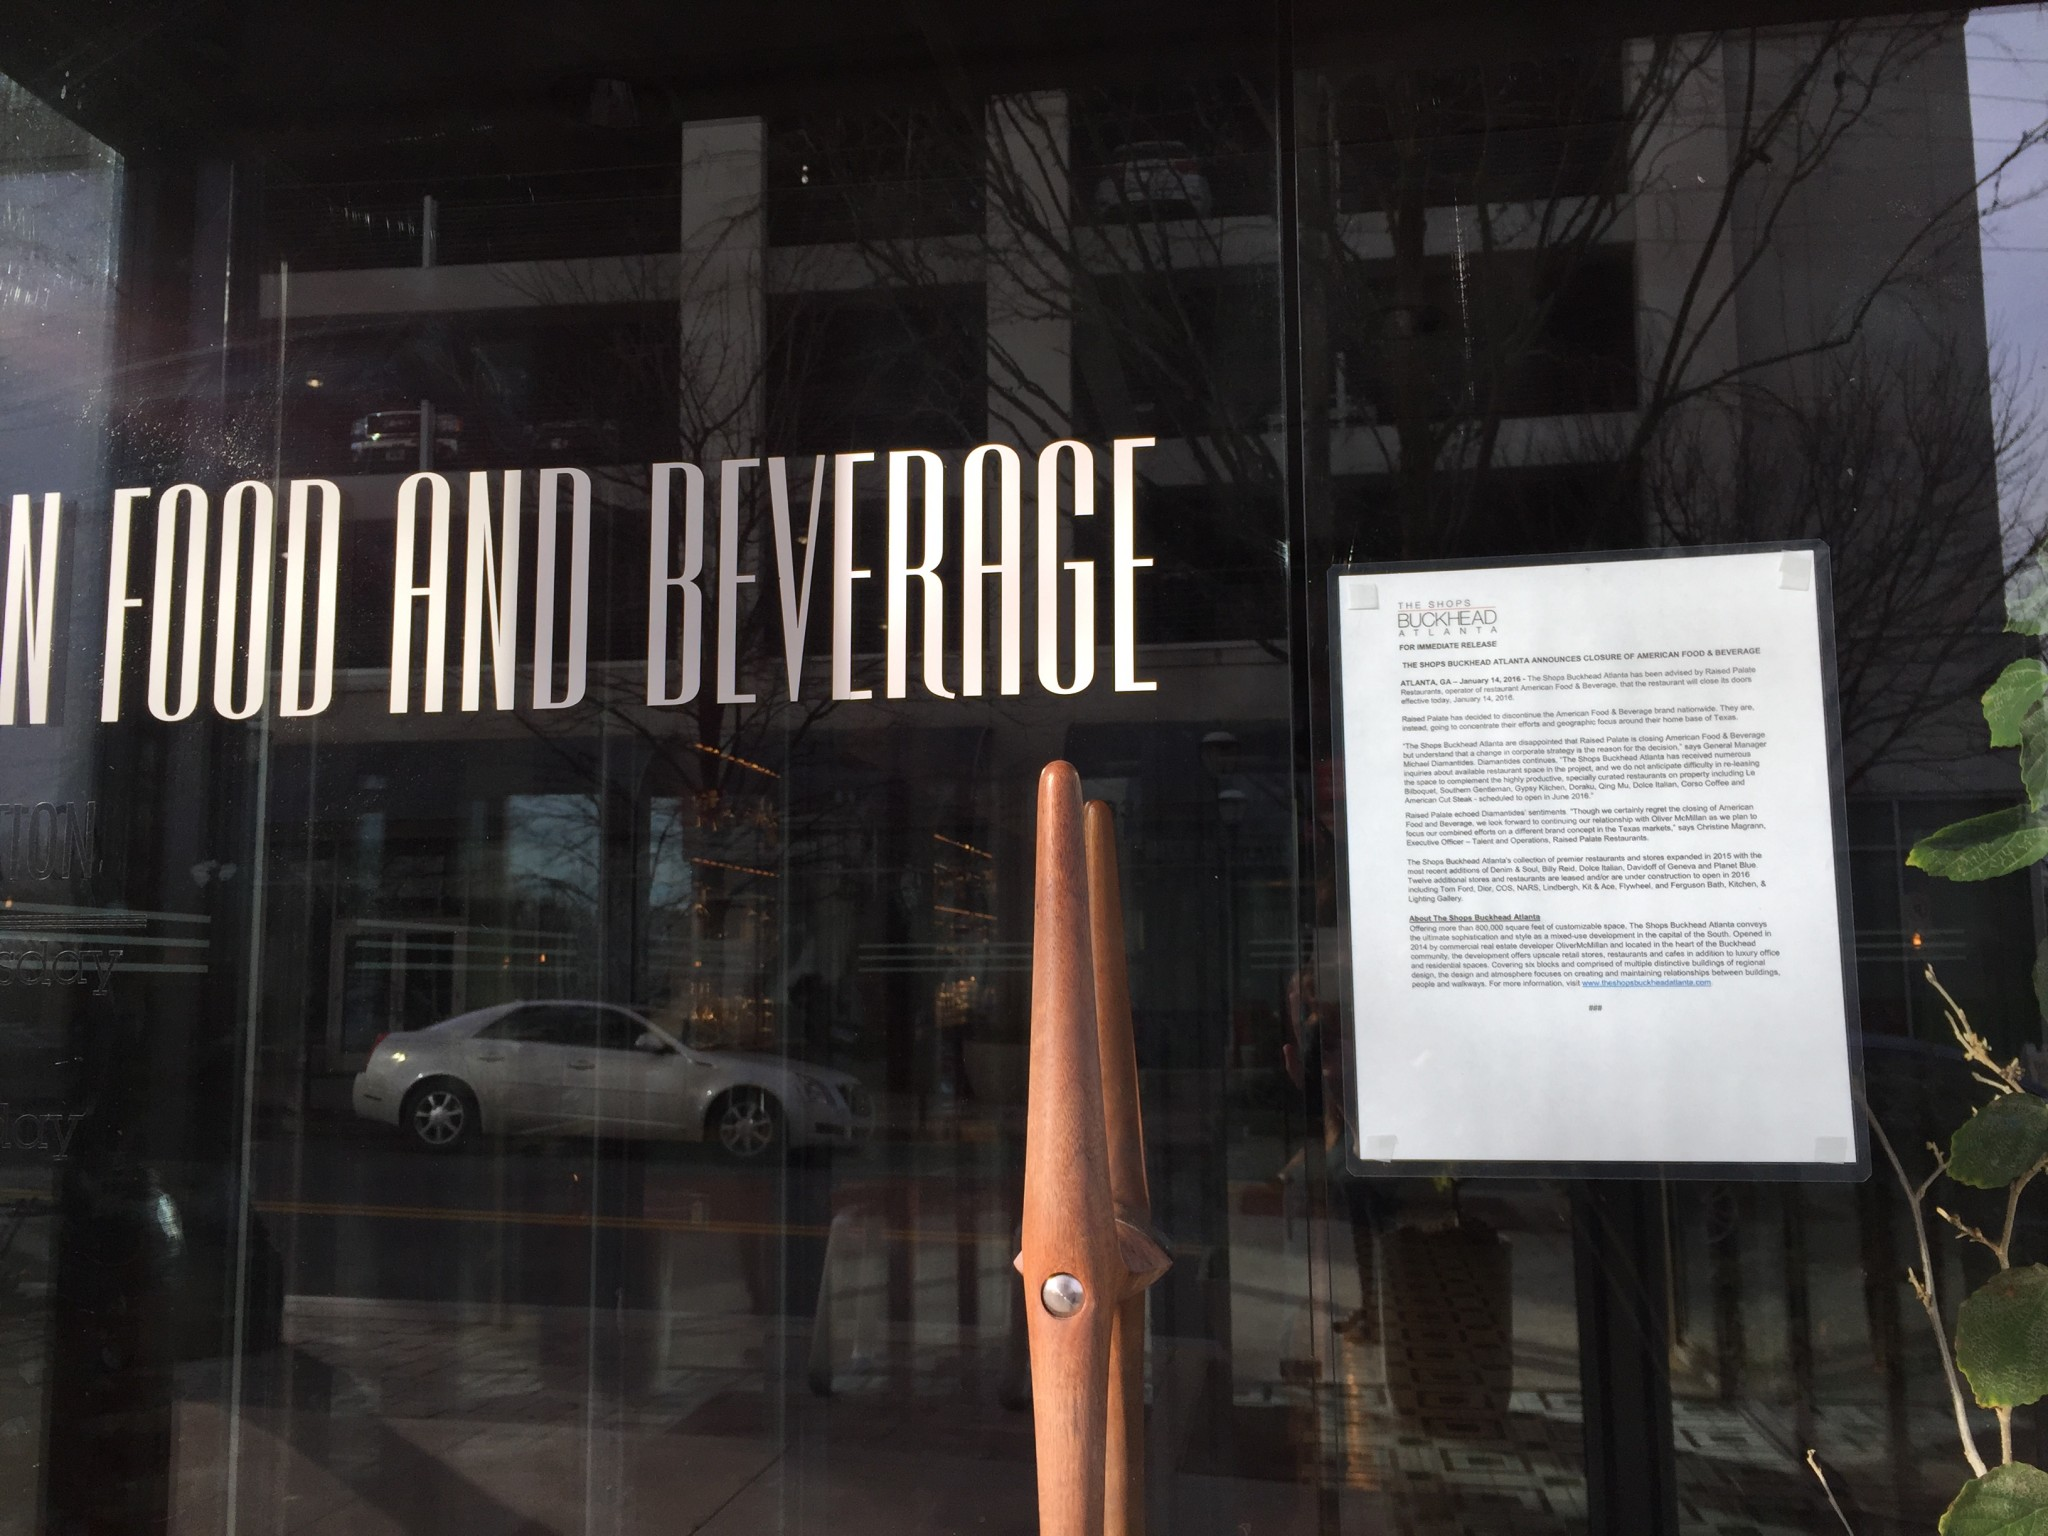 Thursday's press release on the door of American Food & Beverage.